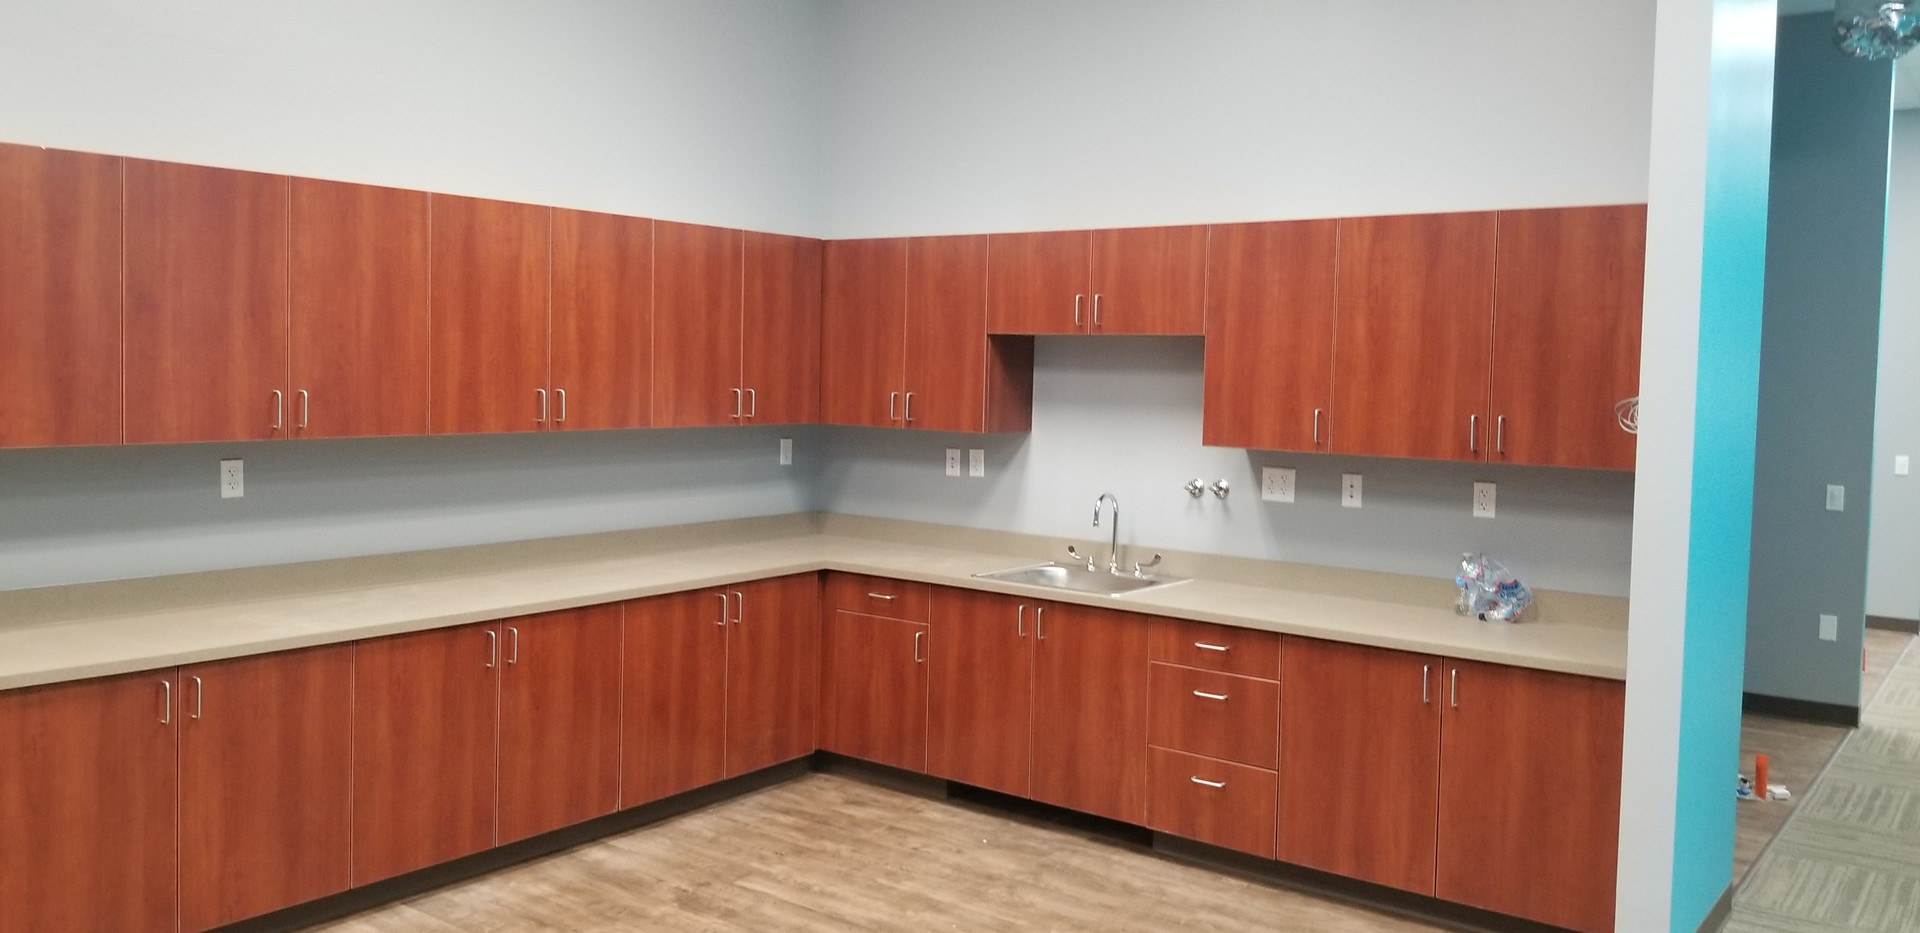 Cabinet and Sink Area - Buildout Pros